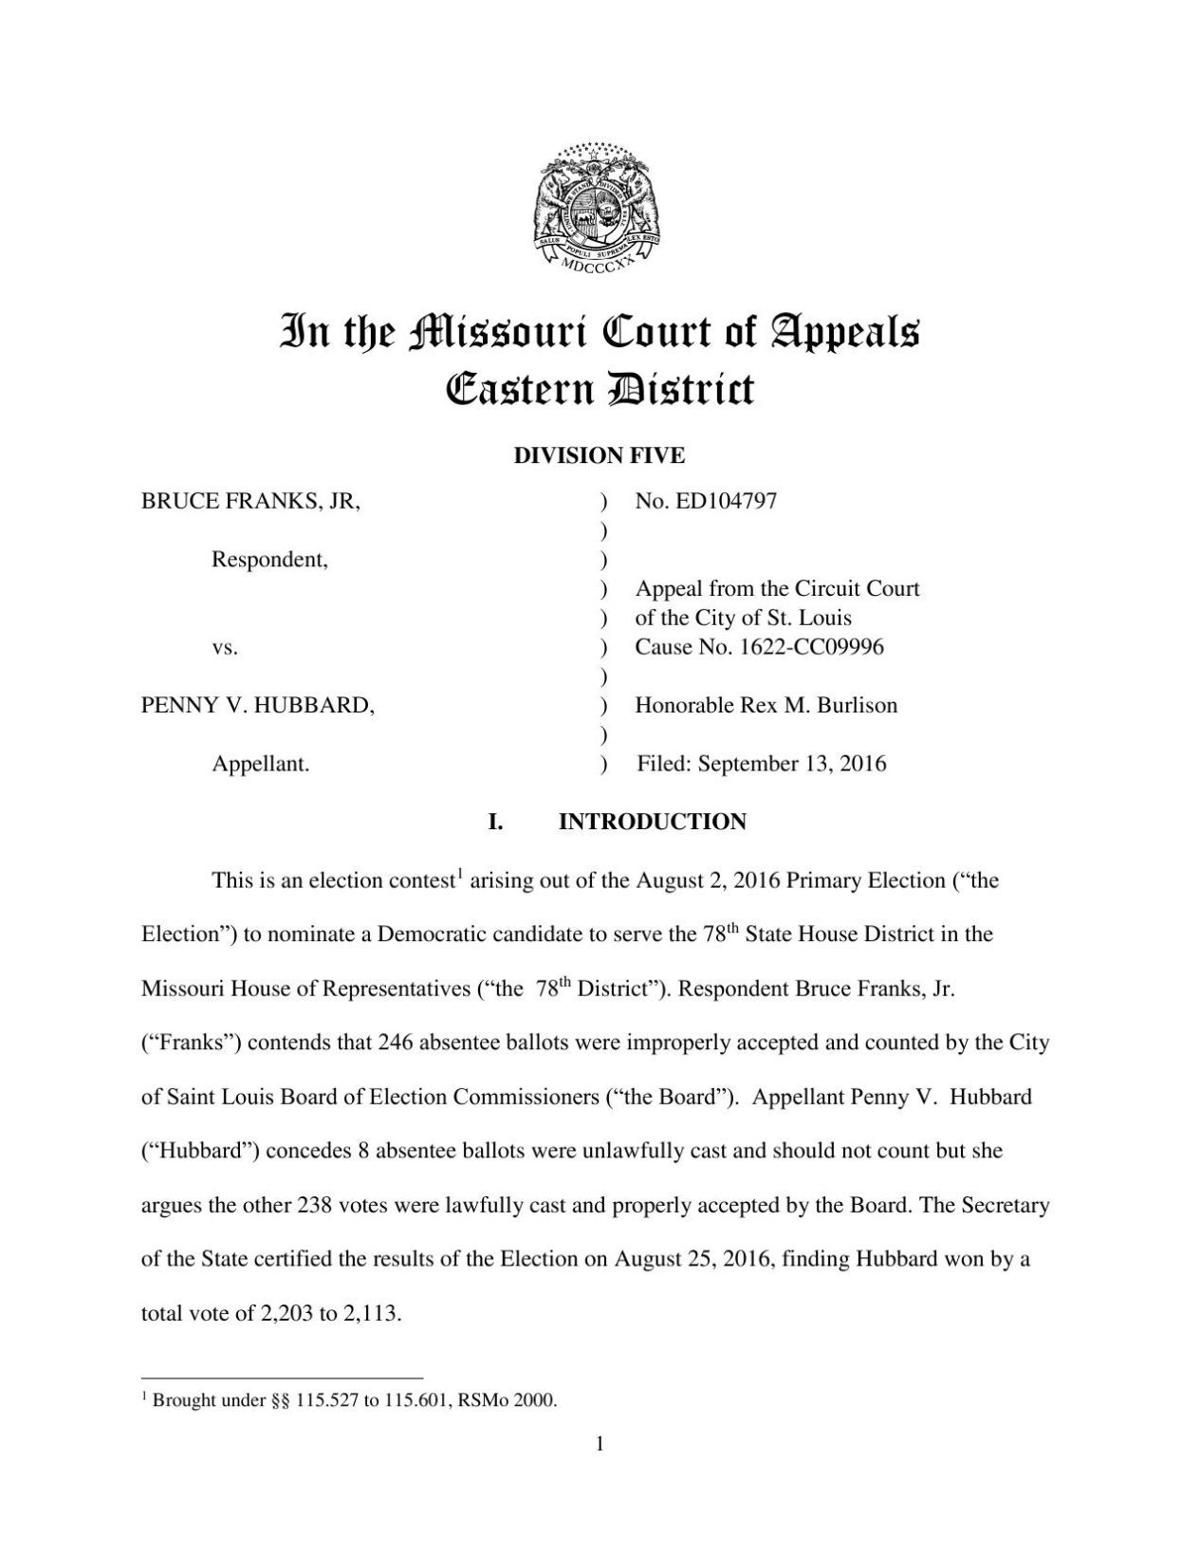 Appellate court decision in Franks vs. Hubbard